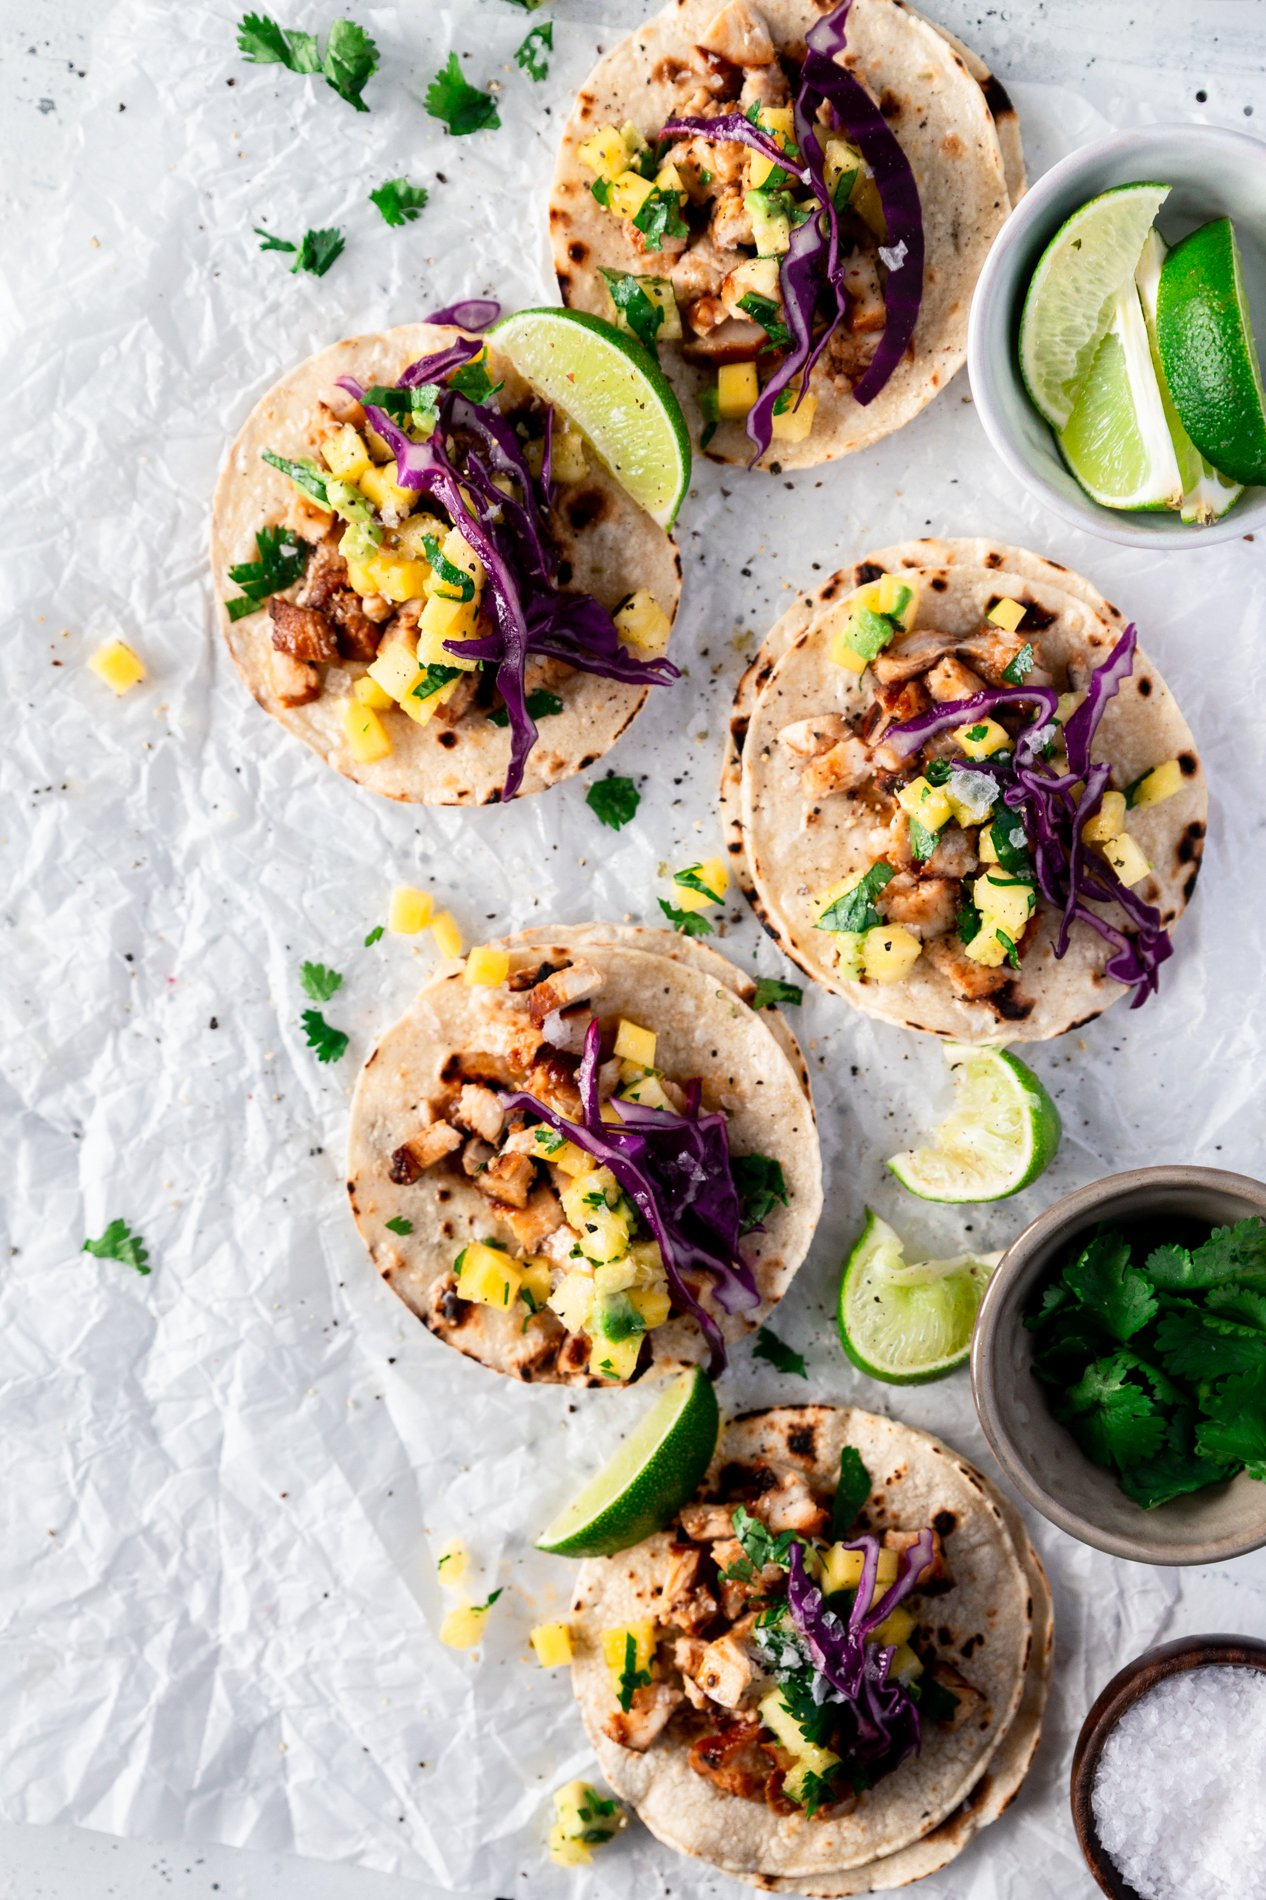 overhead view of five hawaiian huli huli chicken tacos with pineapple, mango, and avocado salsa. fresh limes are scattered around the tacos, as well as chopped cilantro.